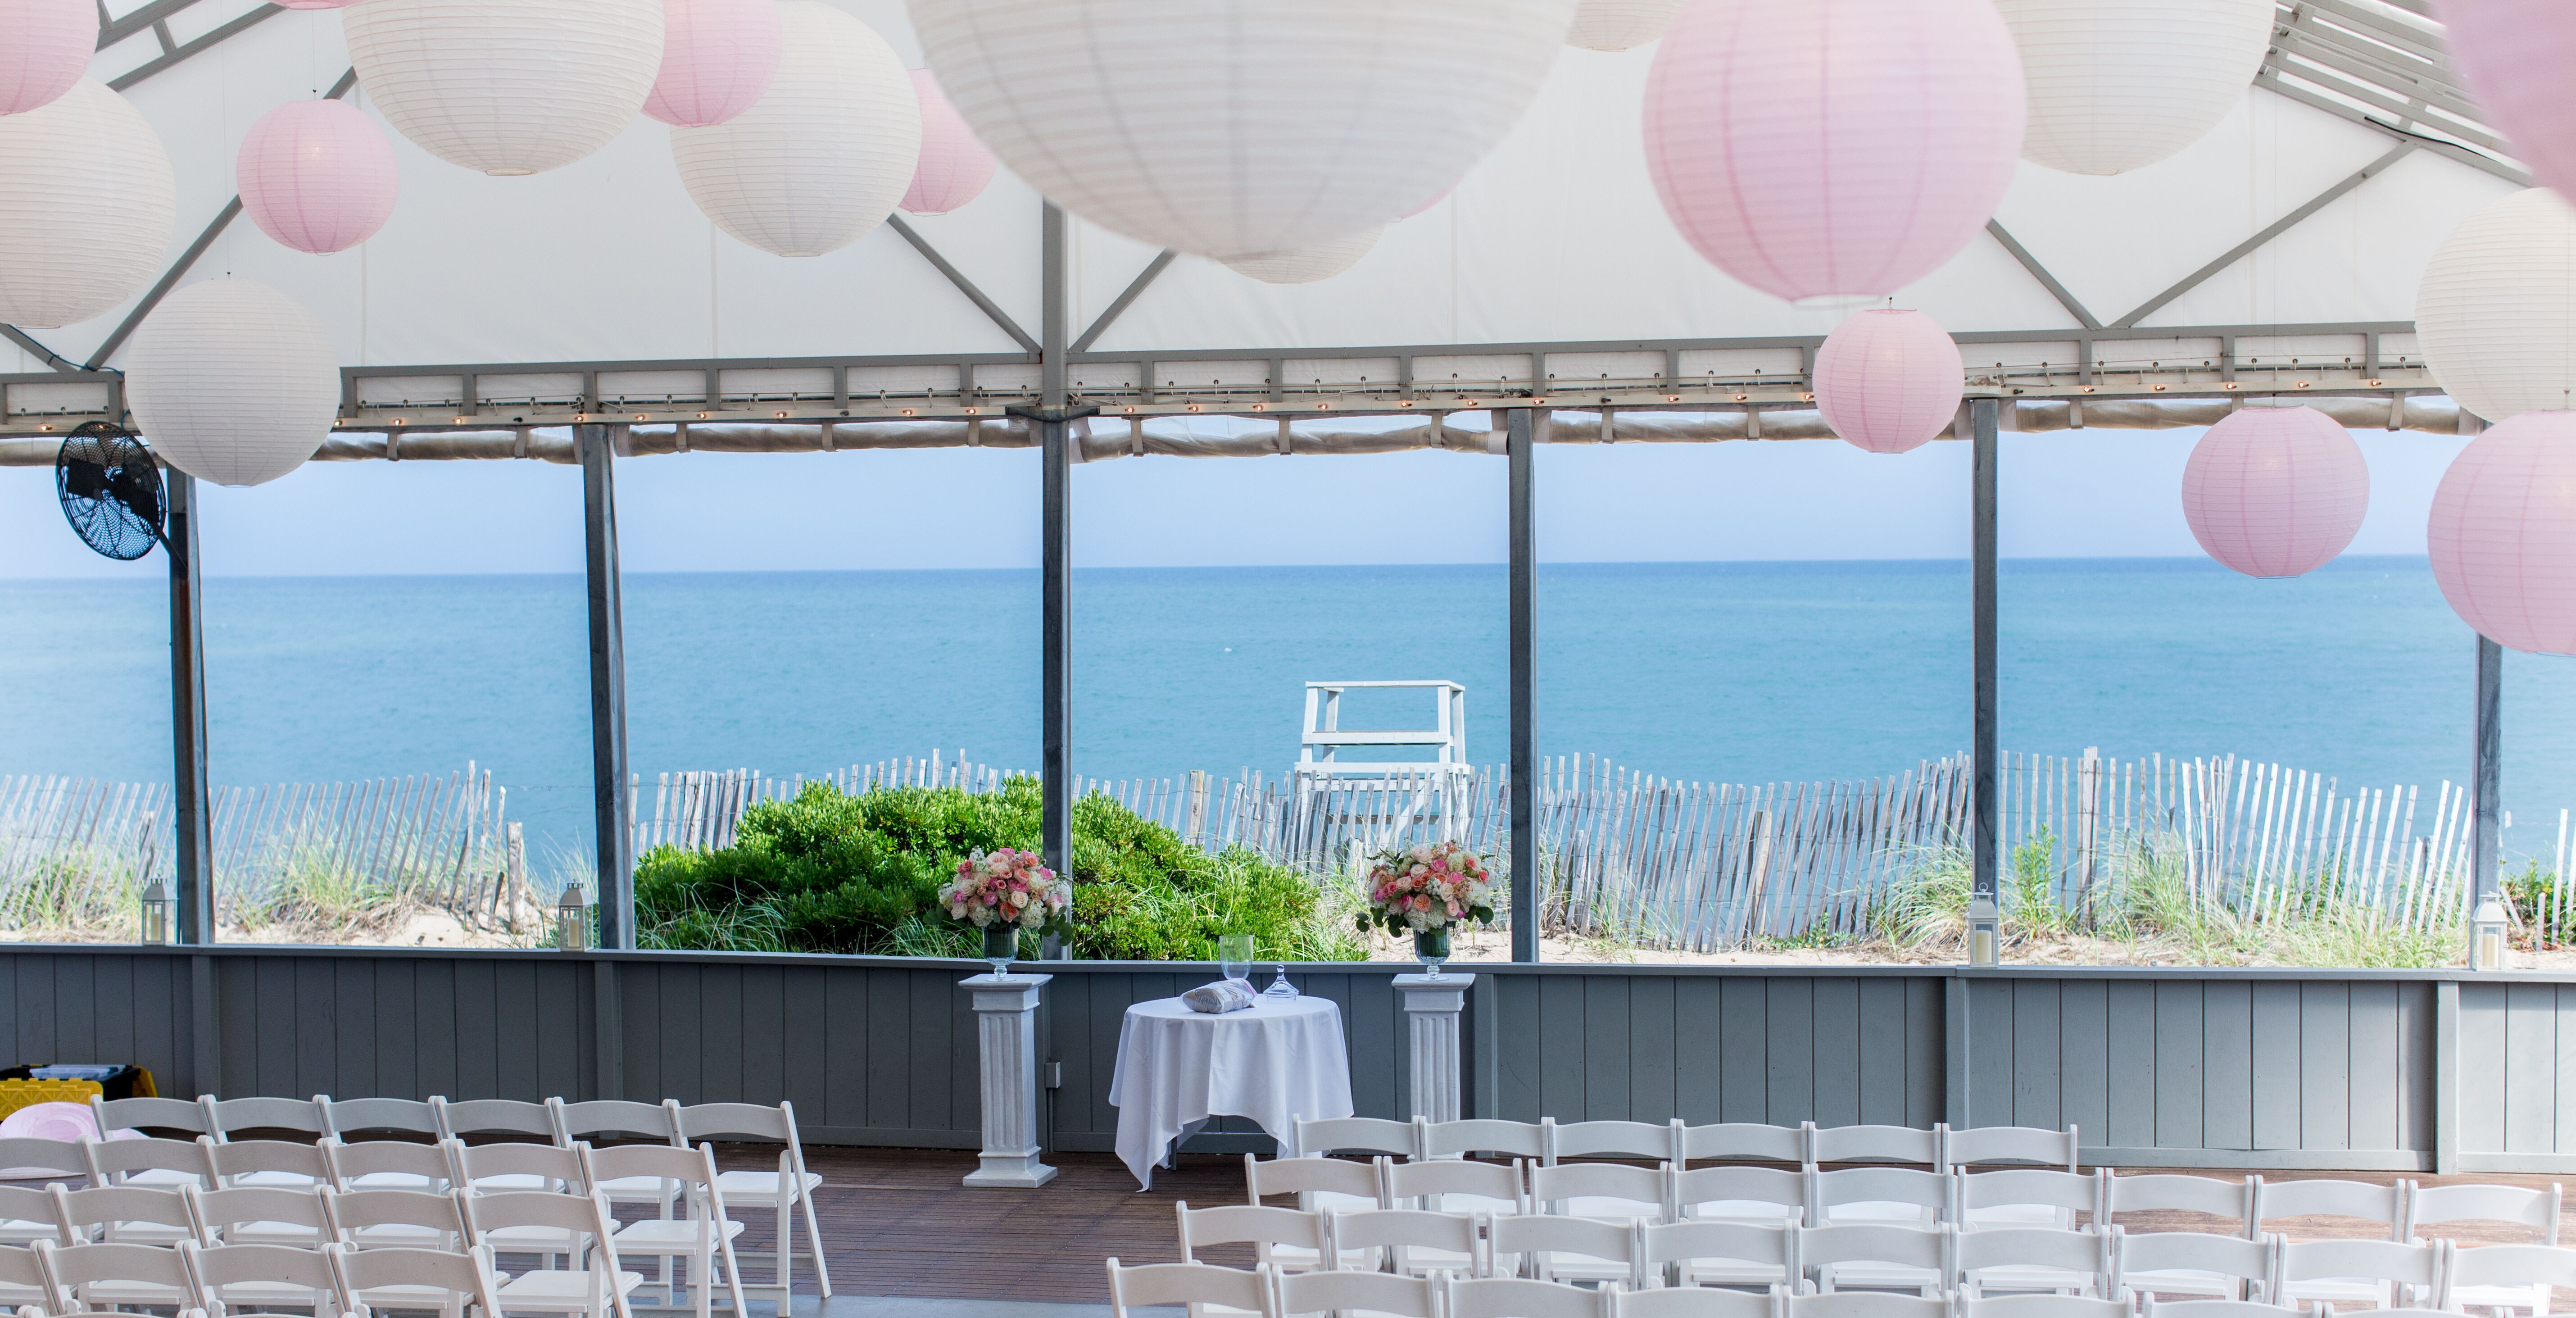 Wedding reception venues in cape cod ma the knot country club at new seabury popponesset inn tent junglespirit Gallery